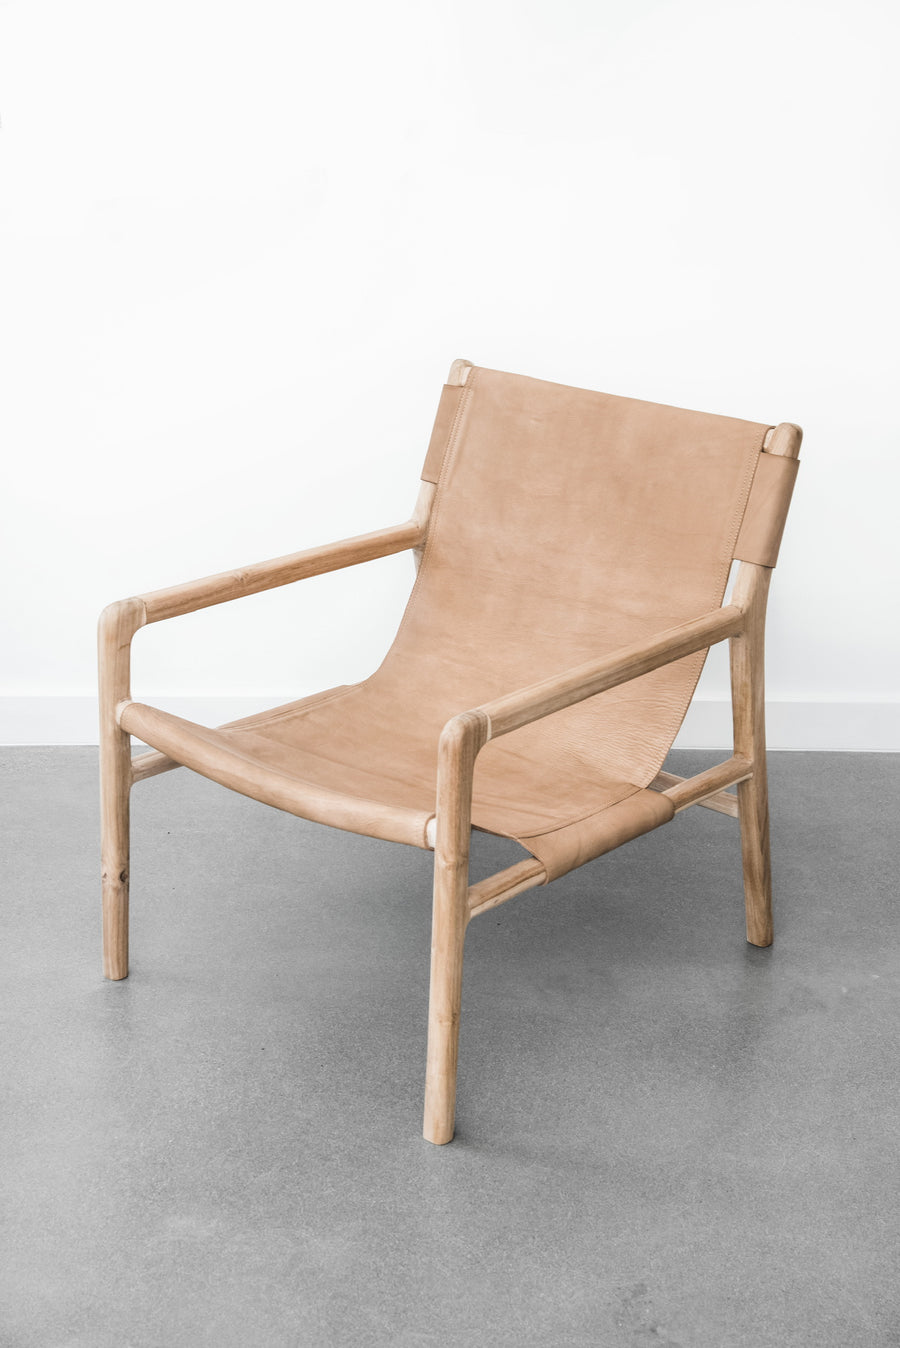 Leather Sling Lounge Chair - Saffron + Poe